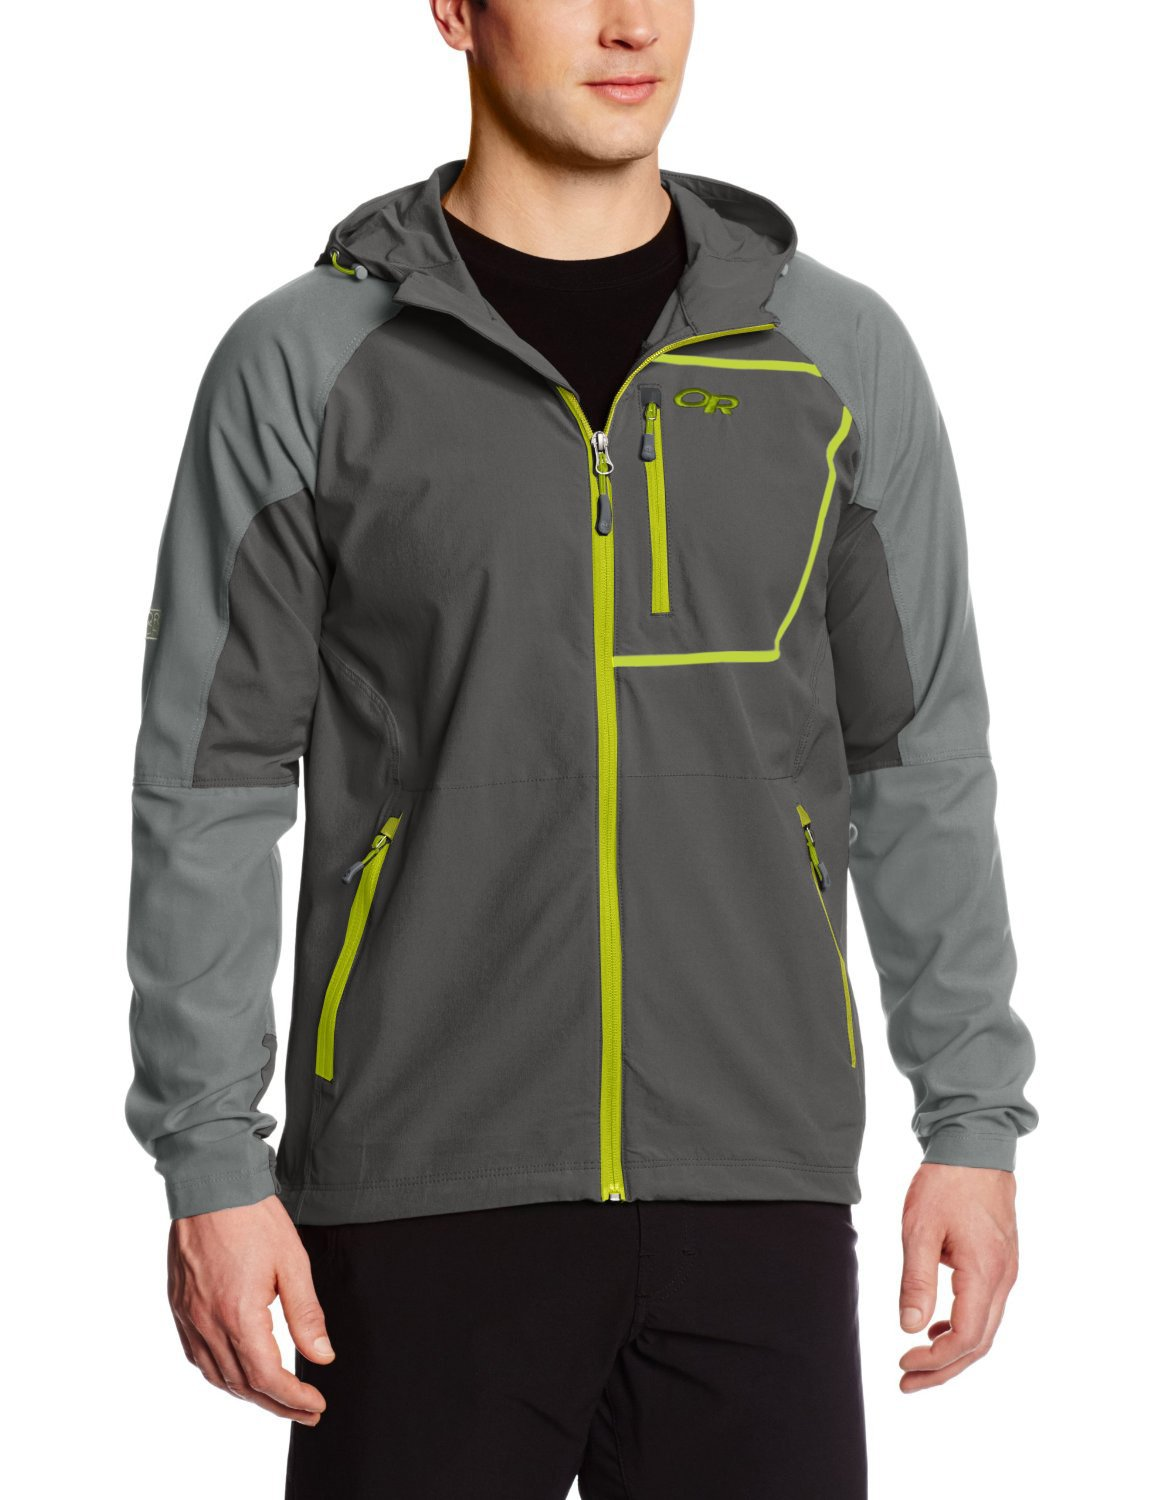 Lightweight Spring Jacket: Ferrosi Hoody by Outdoor Research [Review]